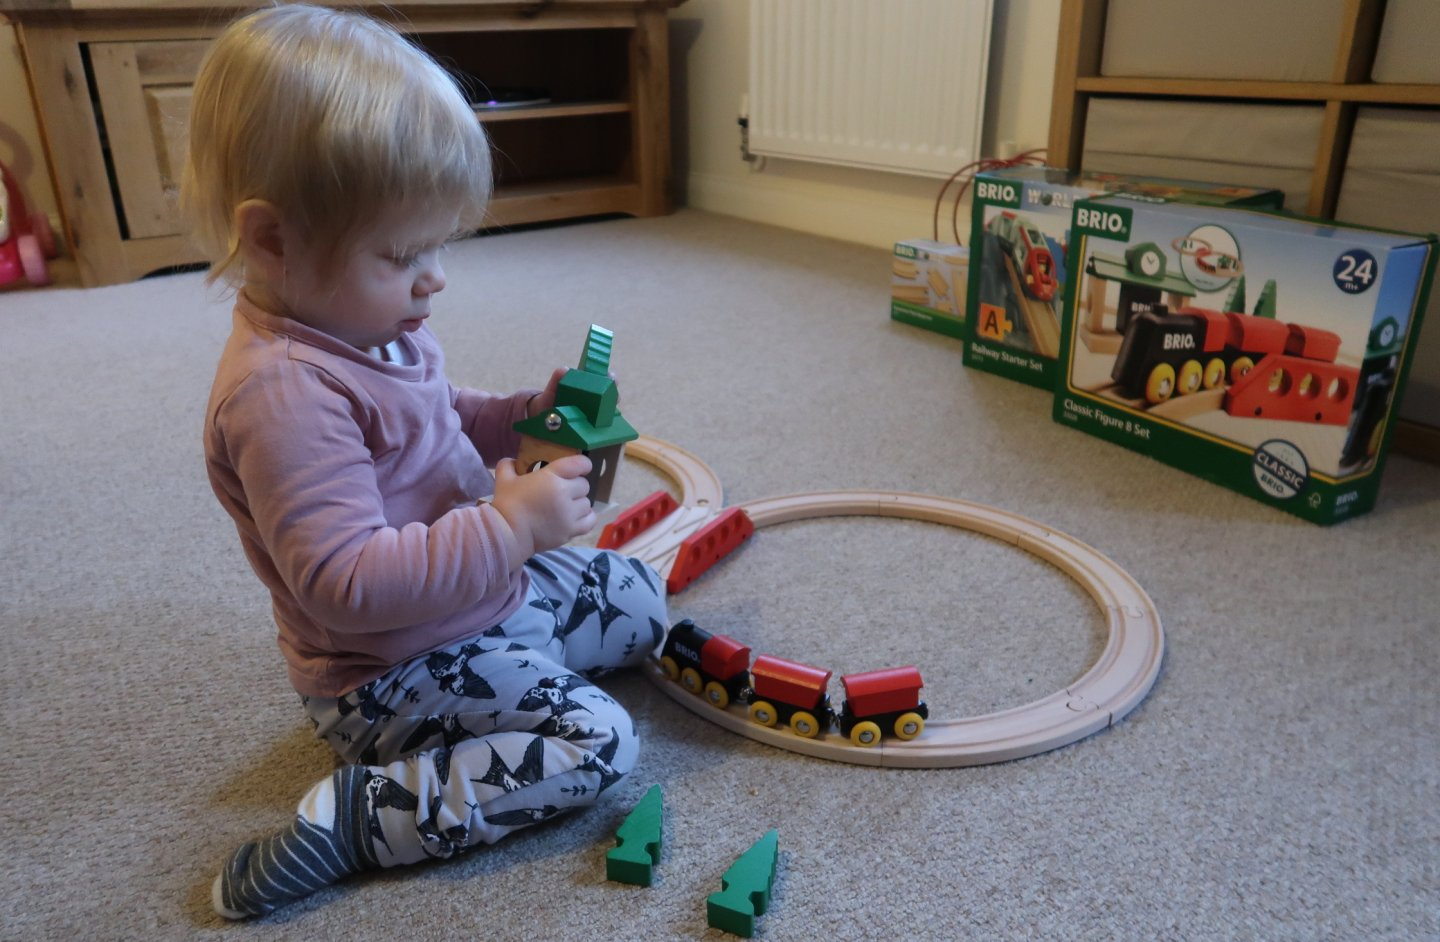 BRIO train set, BRIO railway set